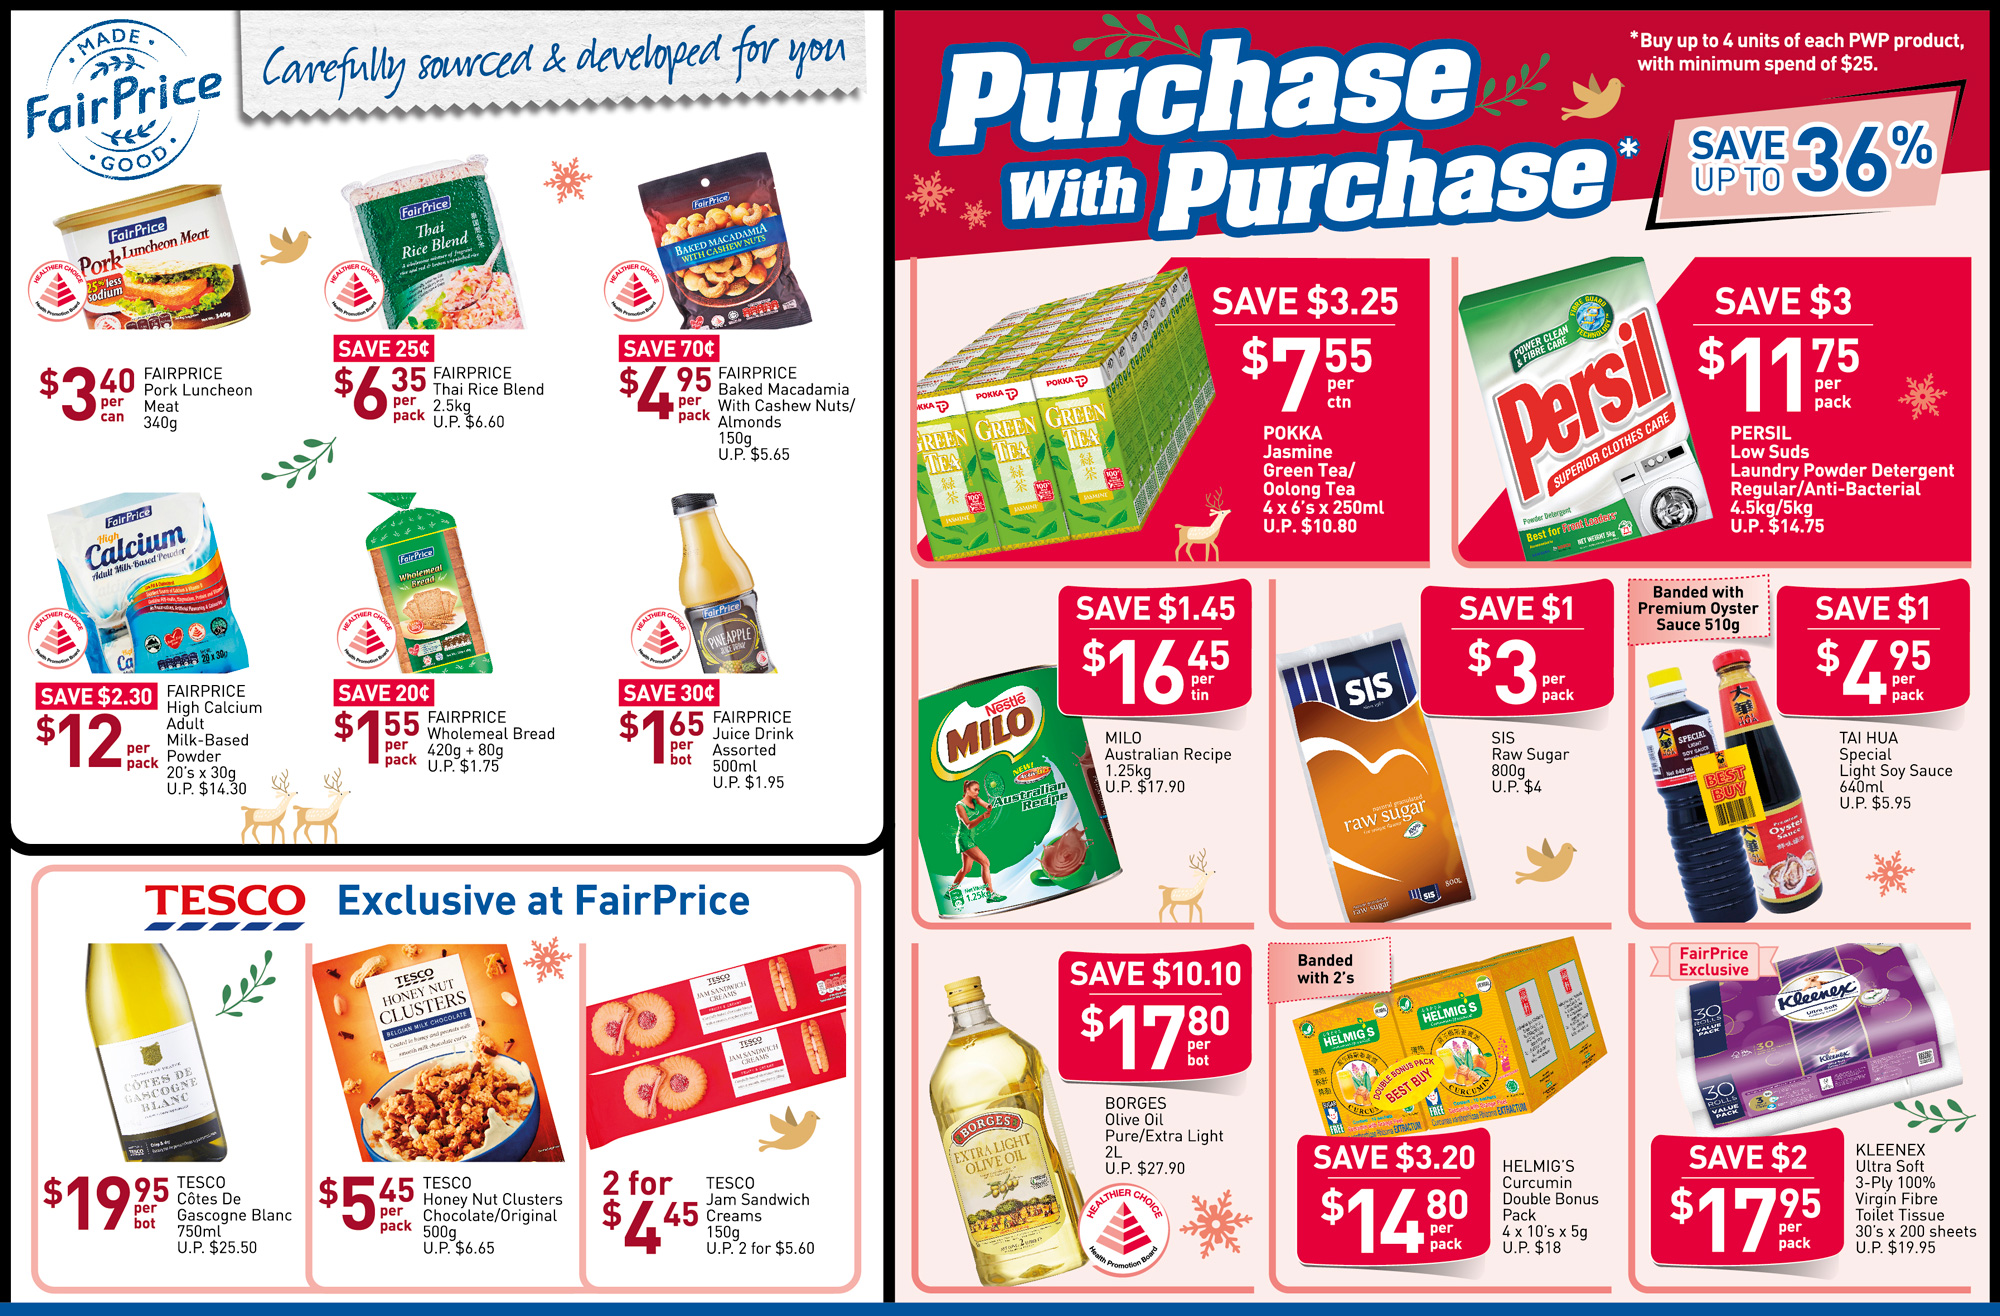 NTUC FairPrice Singapore Your Weekly Saver Promotions 28 Nov - 4 Dec 2019 | Why Not Deals 4 & Promotions